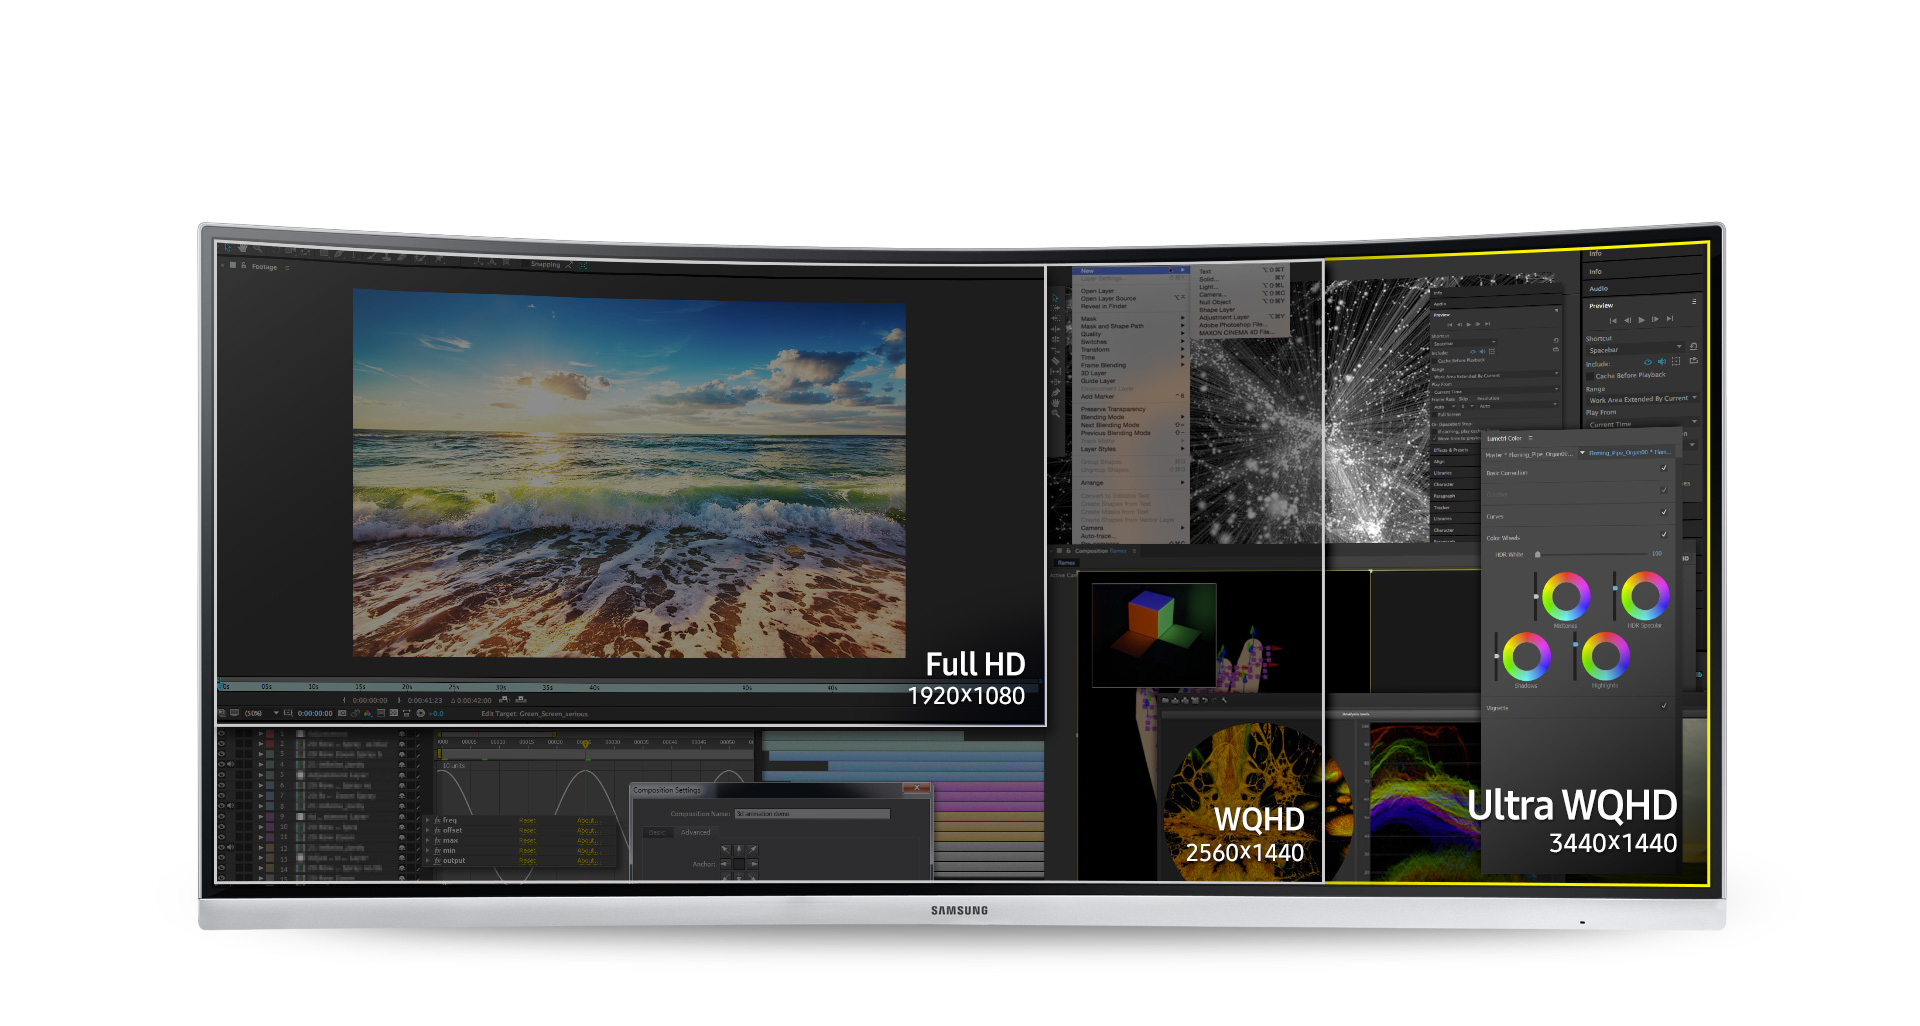 Ultra WQHD for incredible image detail and a wider workspace